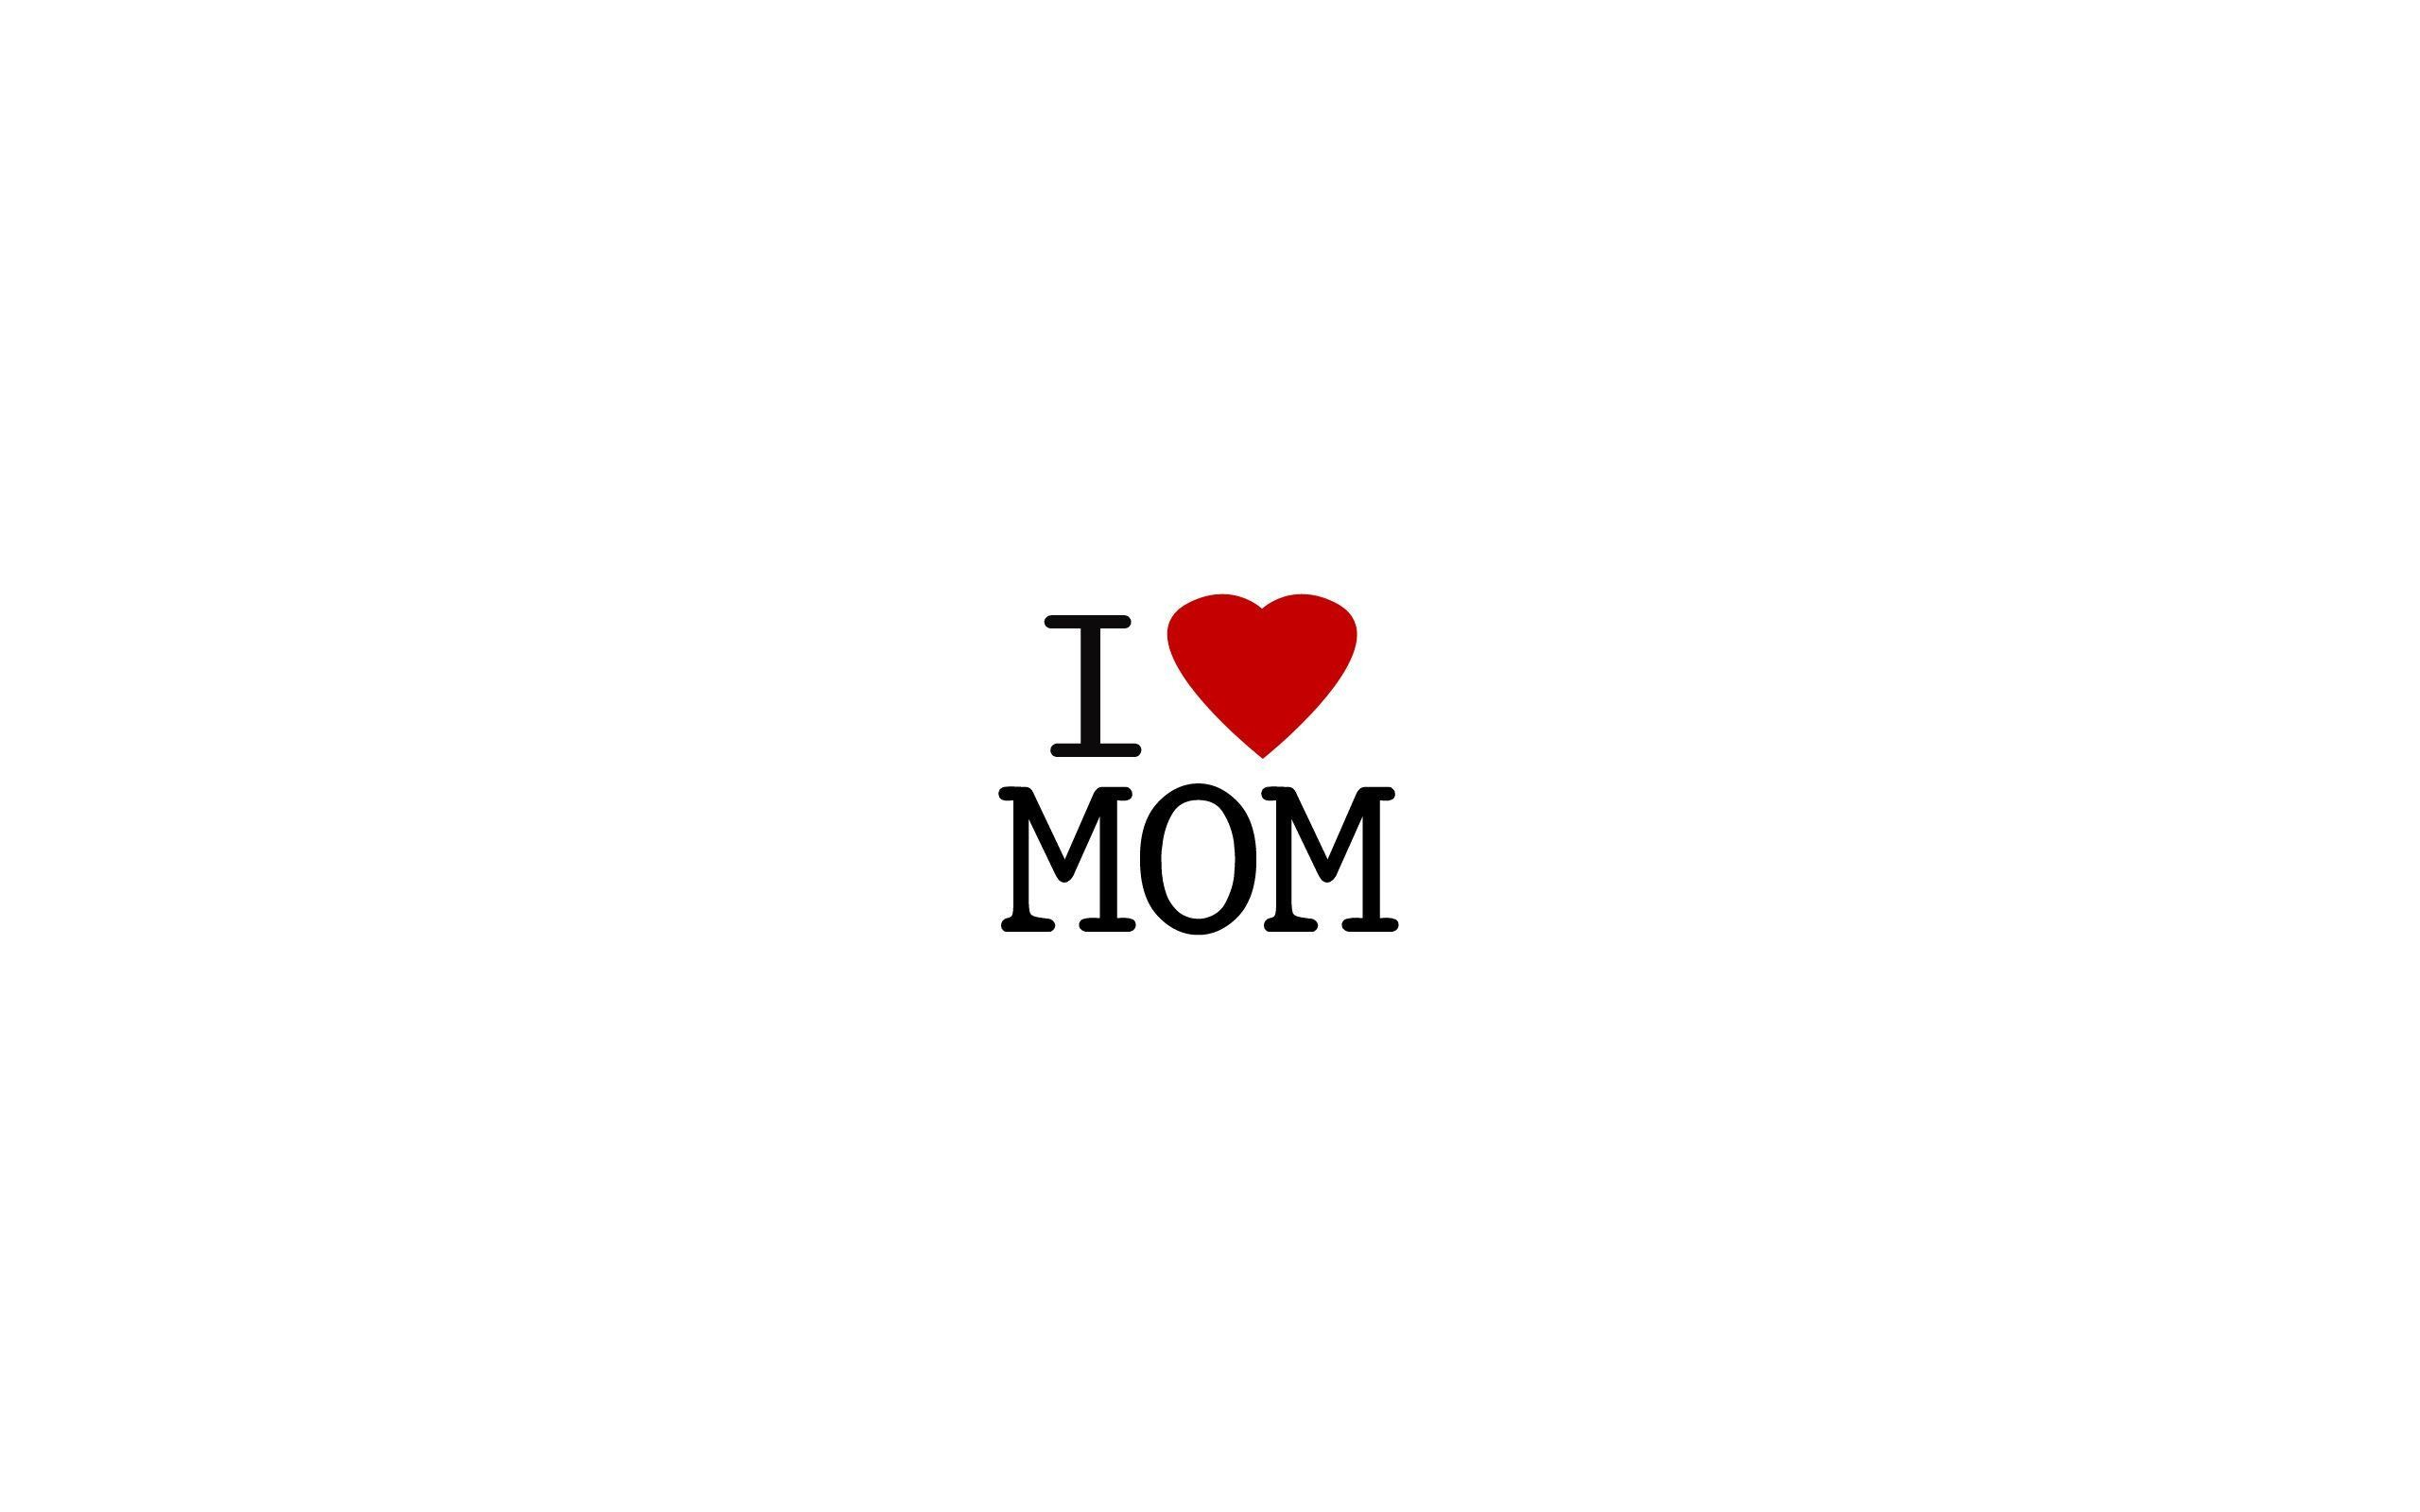 I love my mom wallpaper 61 images 2560x1600 images for i love mom altavistaventures Choice Image